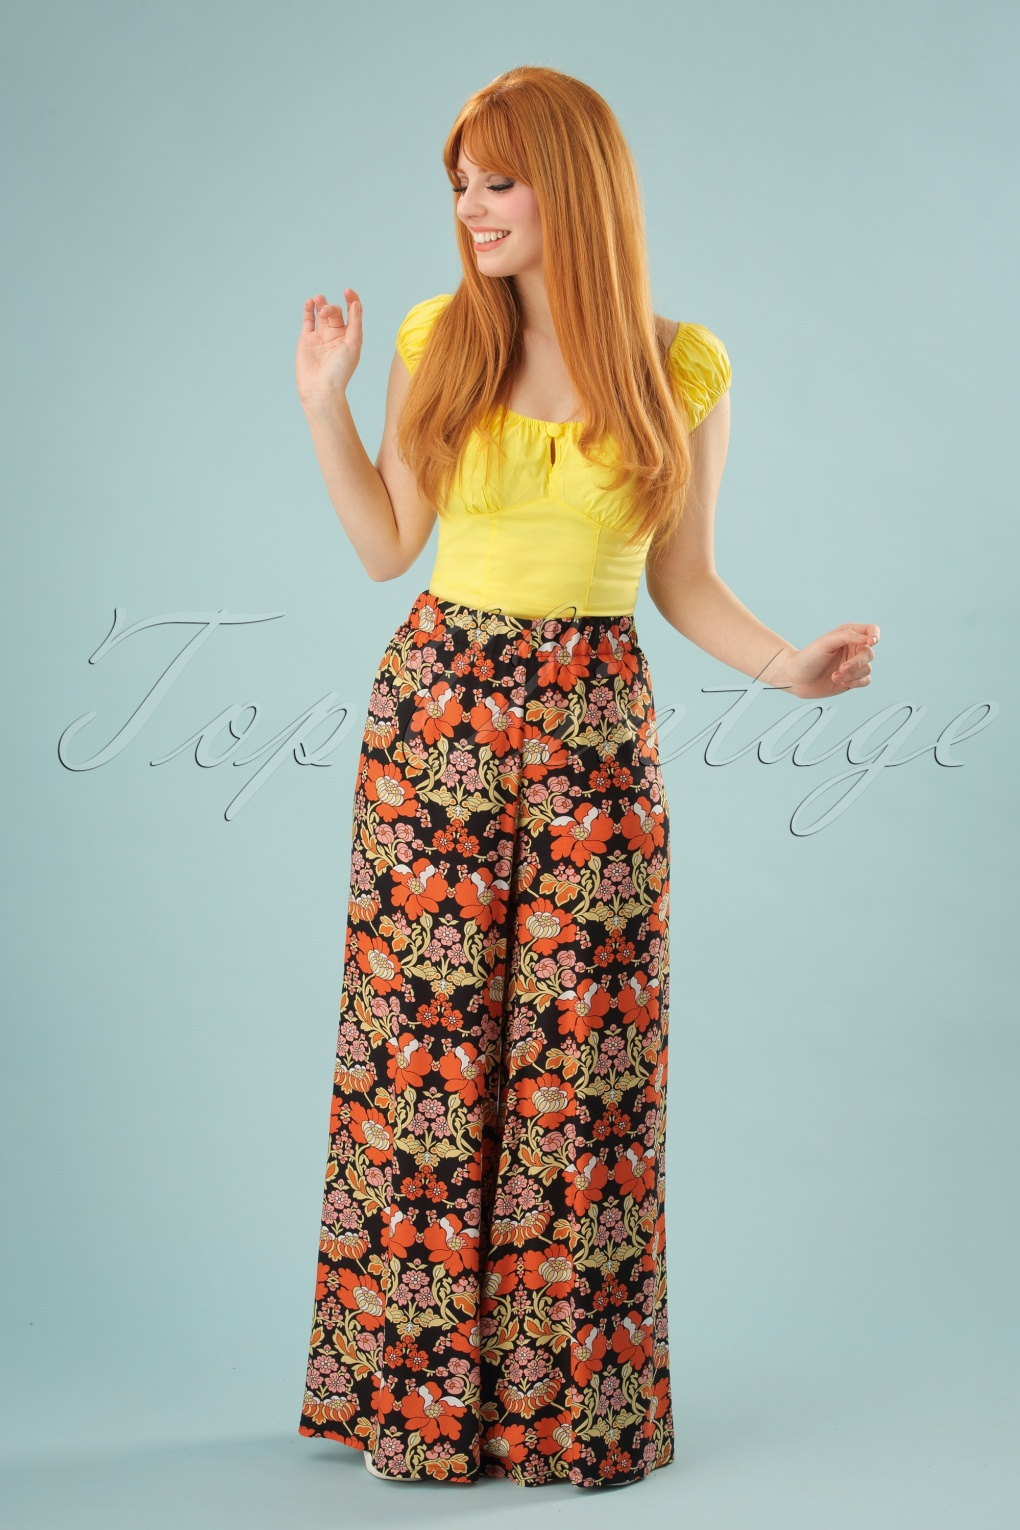 Vintage High Waisted Trousers, Sailor Pants, Jeans 70s Dont Hold Back Flared Pants in Black and Orange £67.91 AT vintagedancer.com